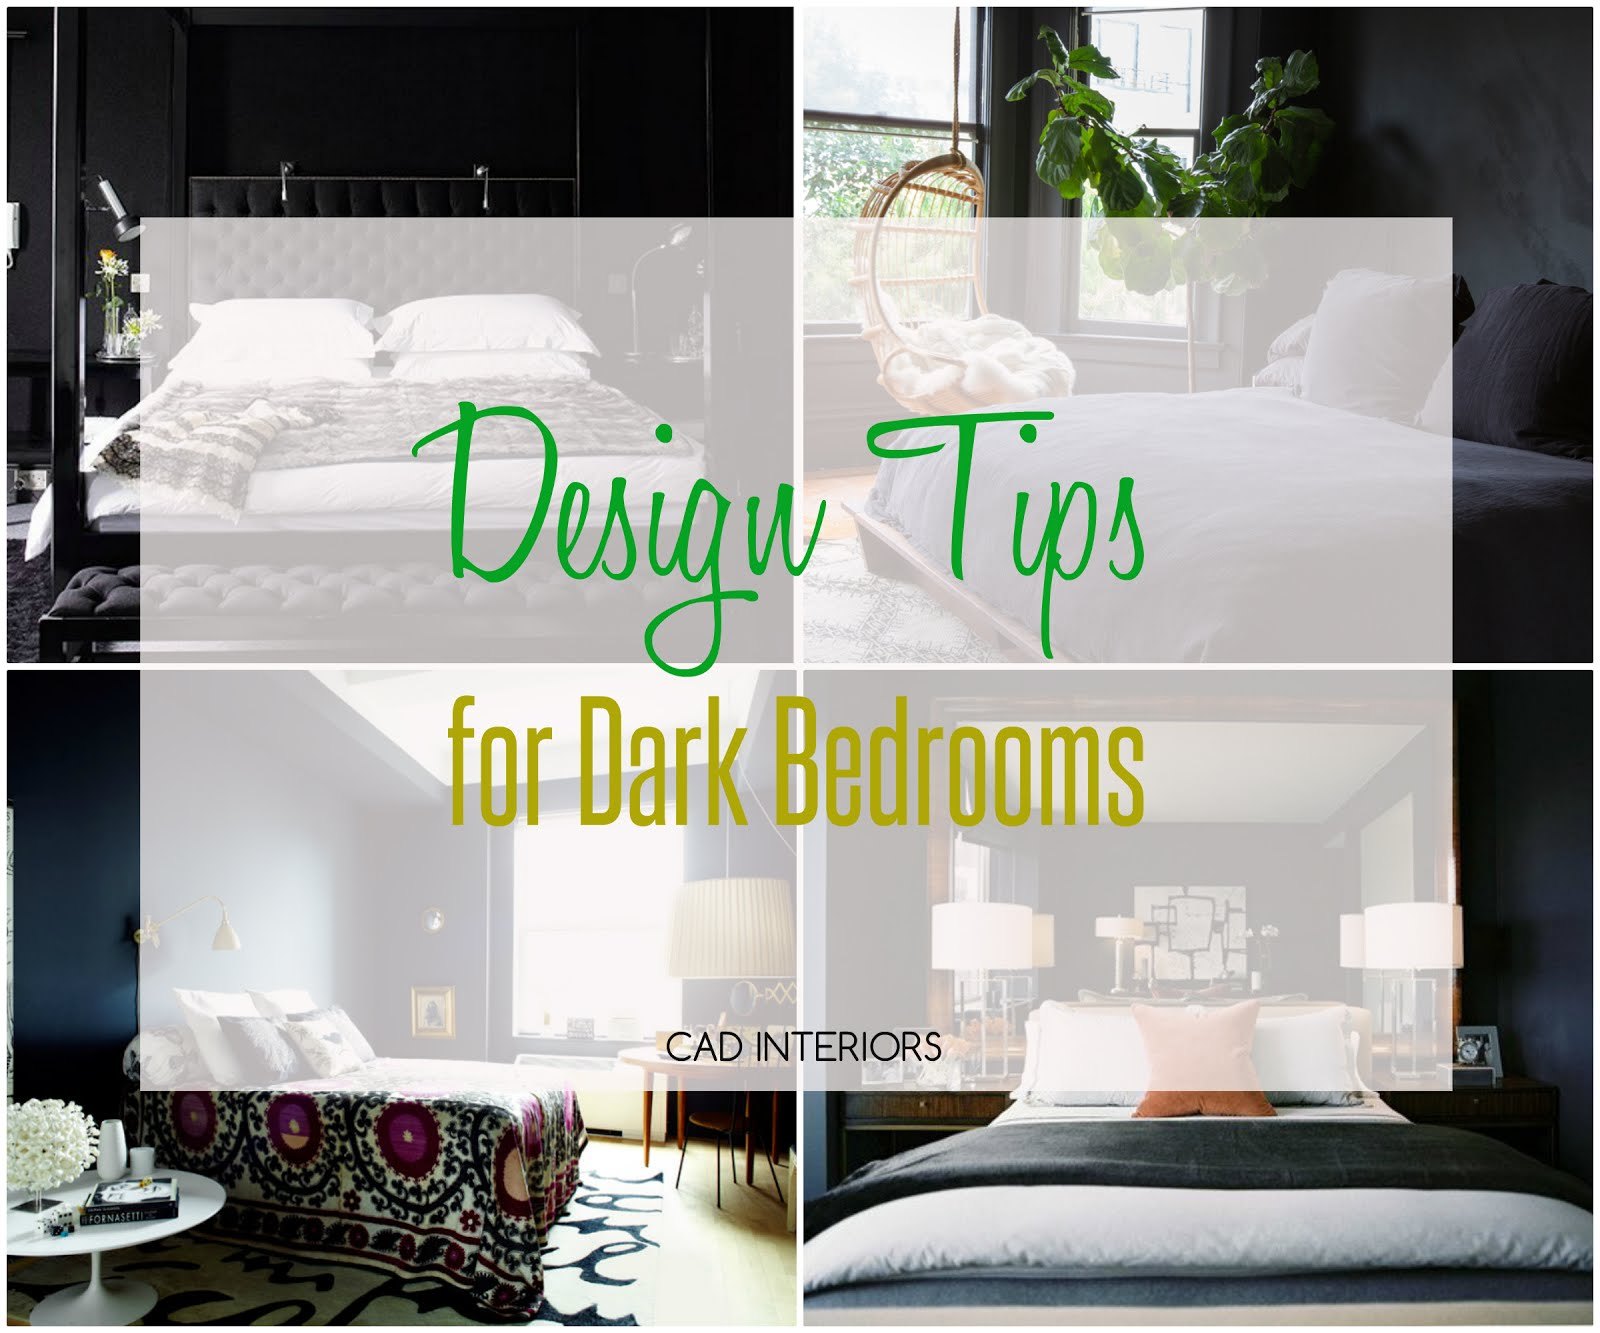 interior design and decorating tips